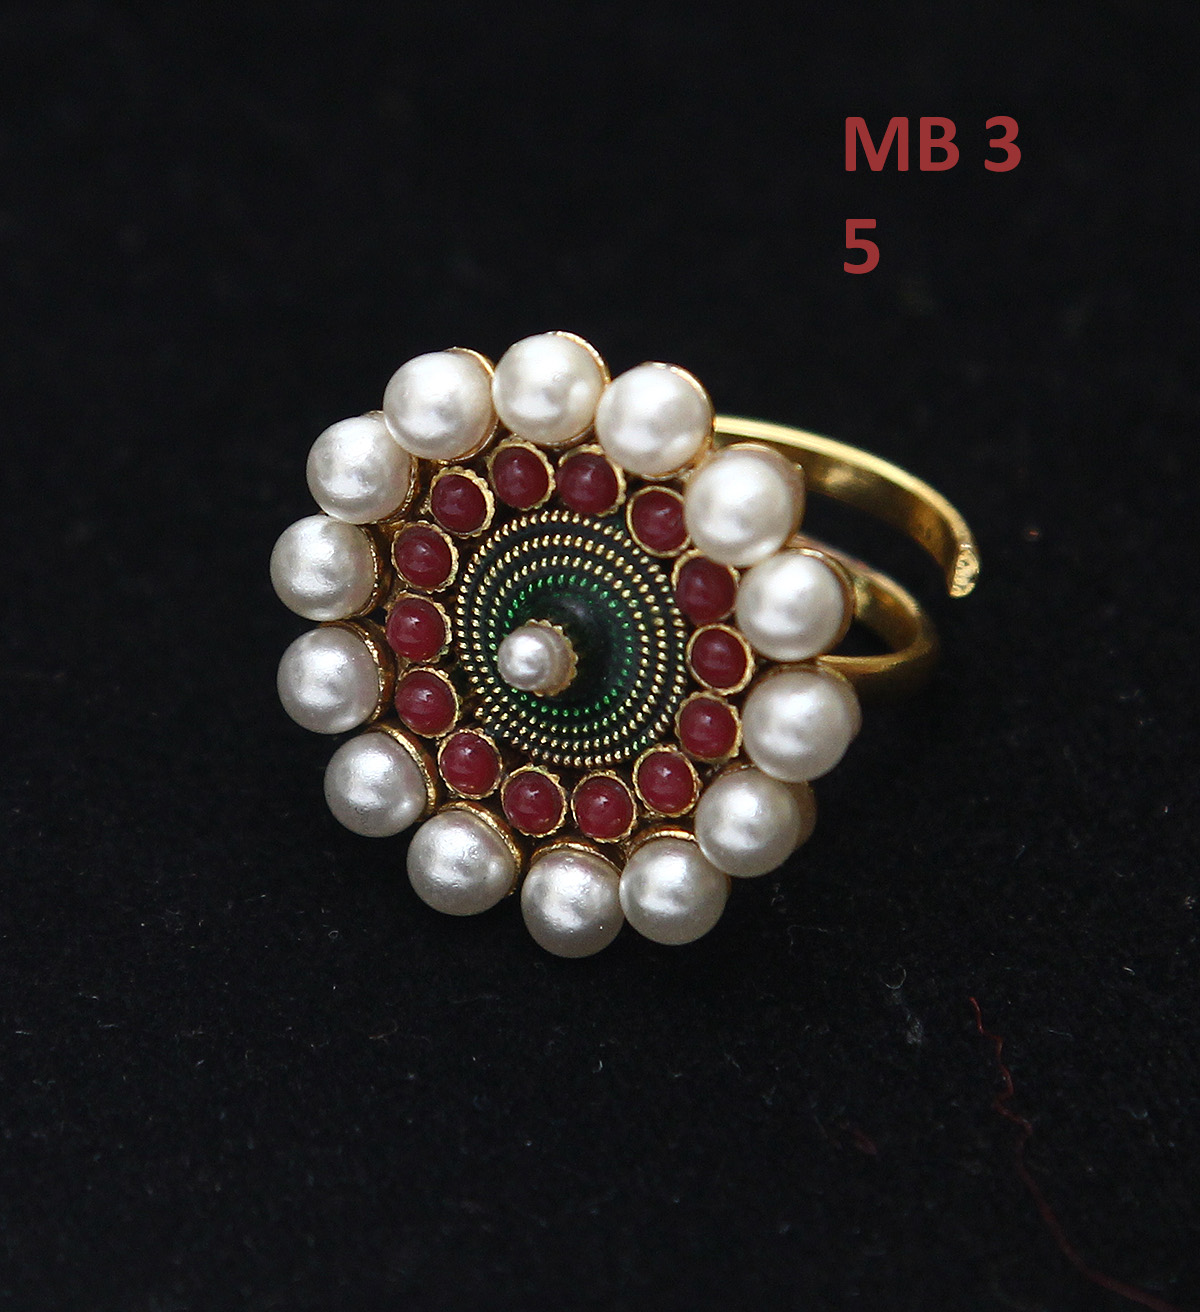 55Carat | 55Carat Latest Design Ethnic Ring Pearl,Ruby CZ Multicolor Rich Designer 18K Gold Plated Adjustable Rings Fashion Jewellery for Girls Ladies Women